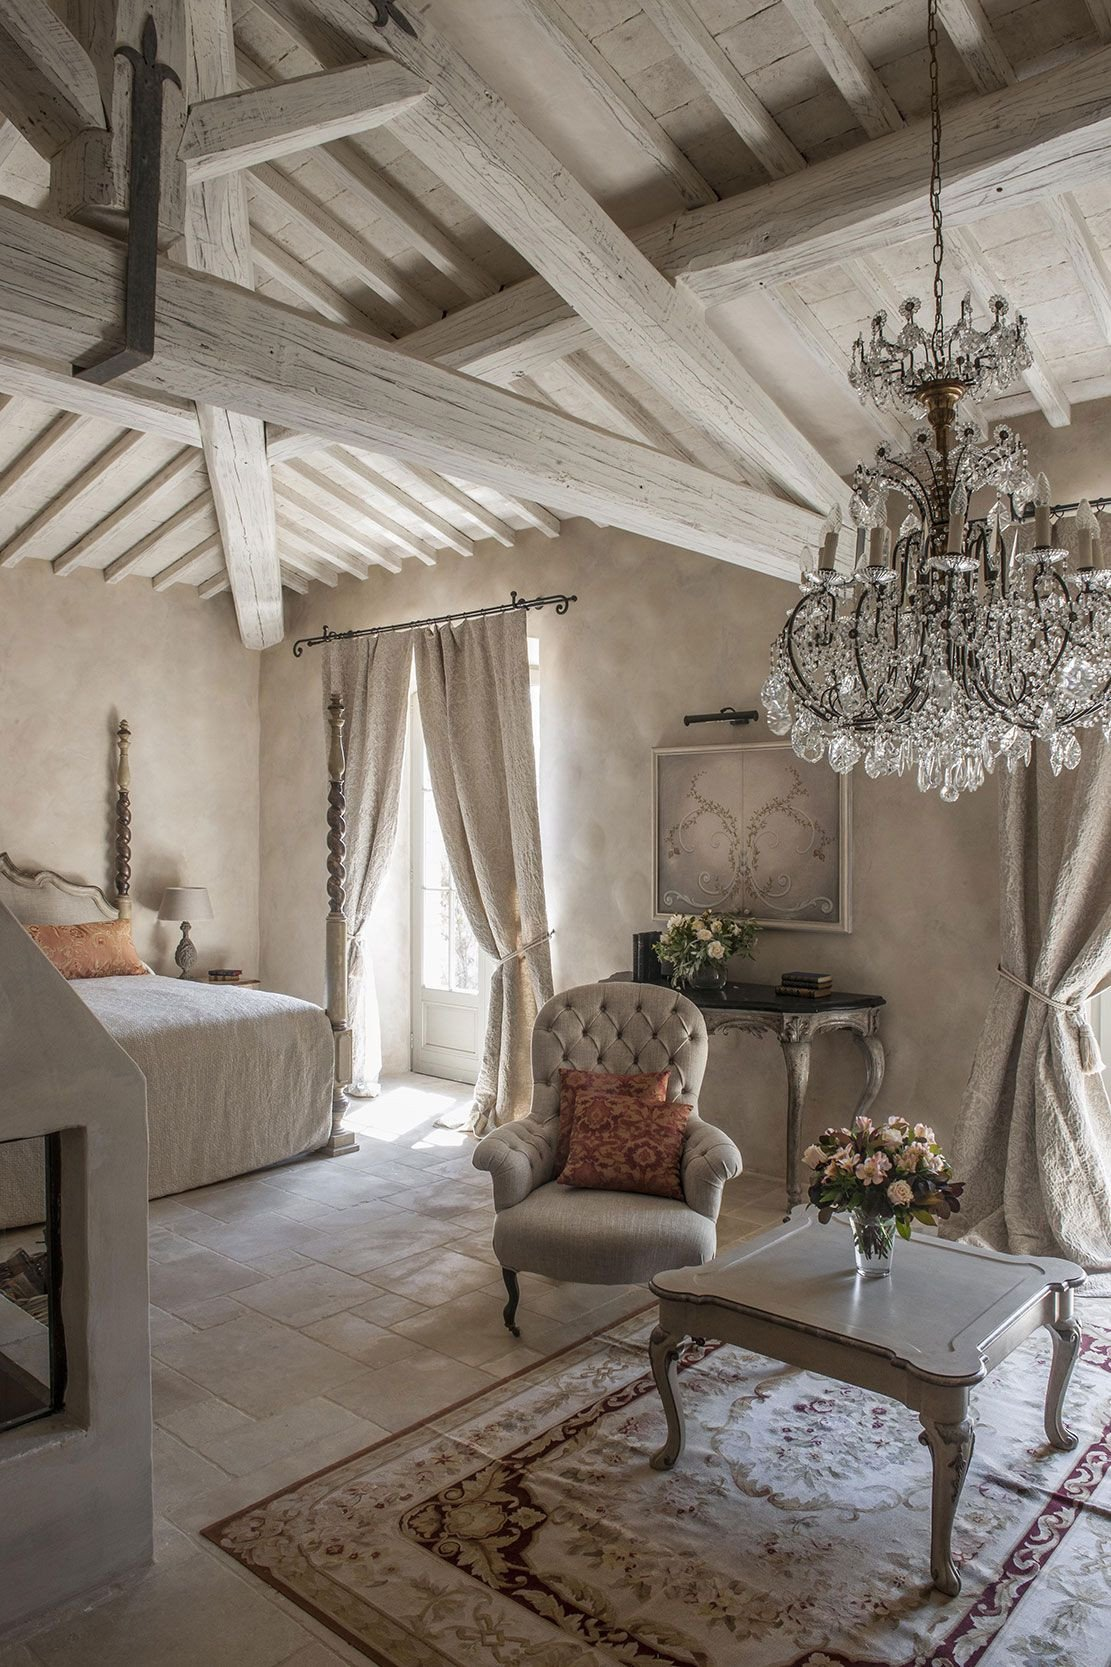 Images Of French Country Decor Fresh 10 Tips for Creating the Most Relaxing French Country Bedroom Ever